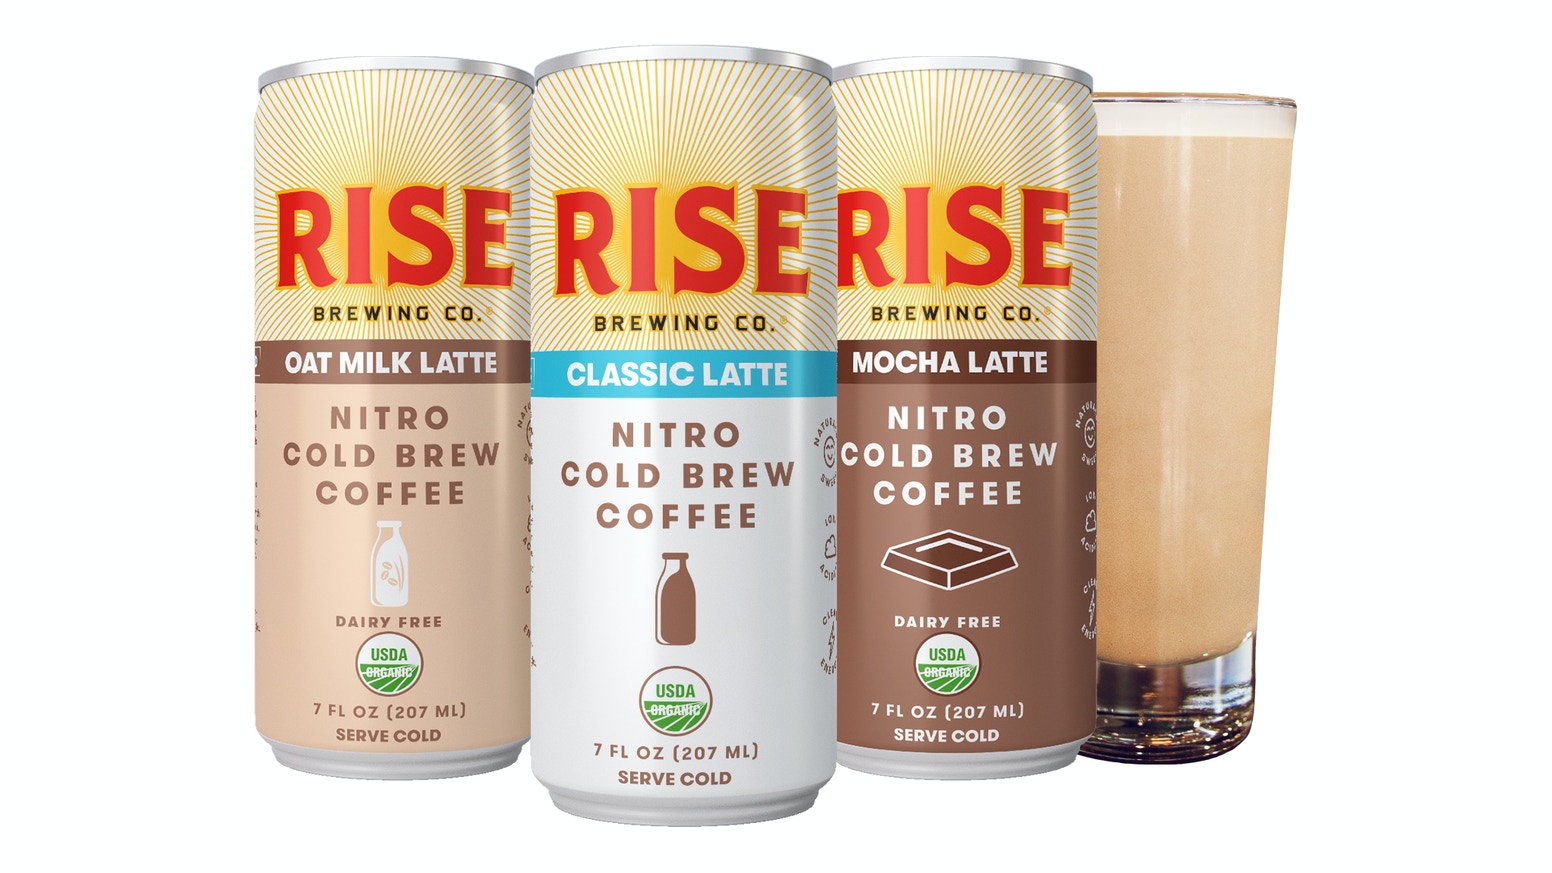 nitro cold brew coffee lattes by rise brewing co by rise brewing co